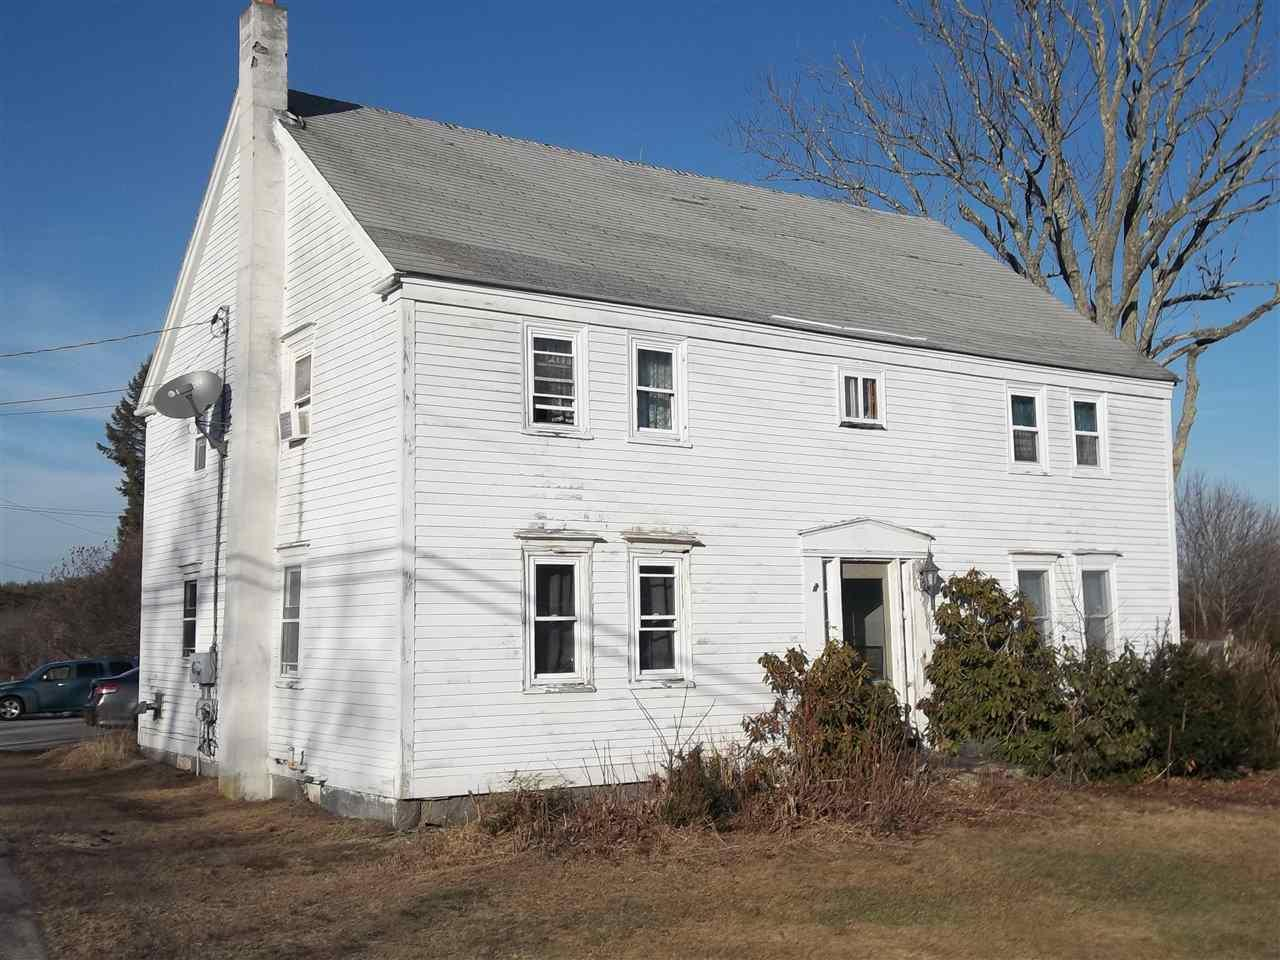 Local Real Estate: Homes for Sale — Greenland, NH — Coldwell Banker